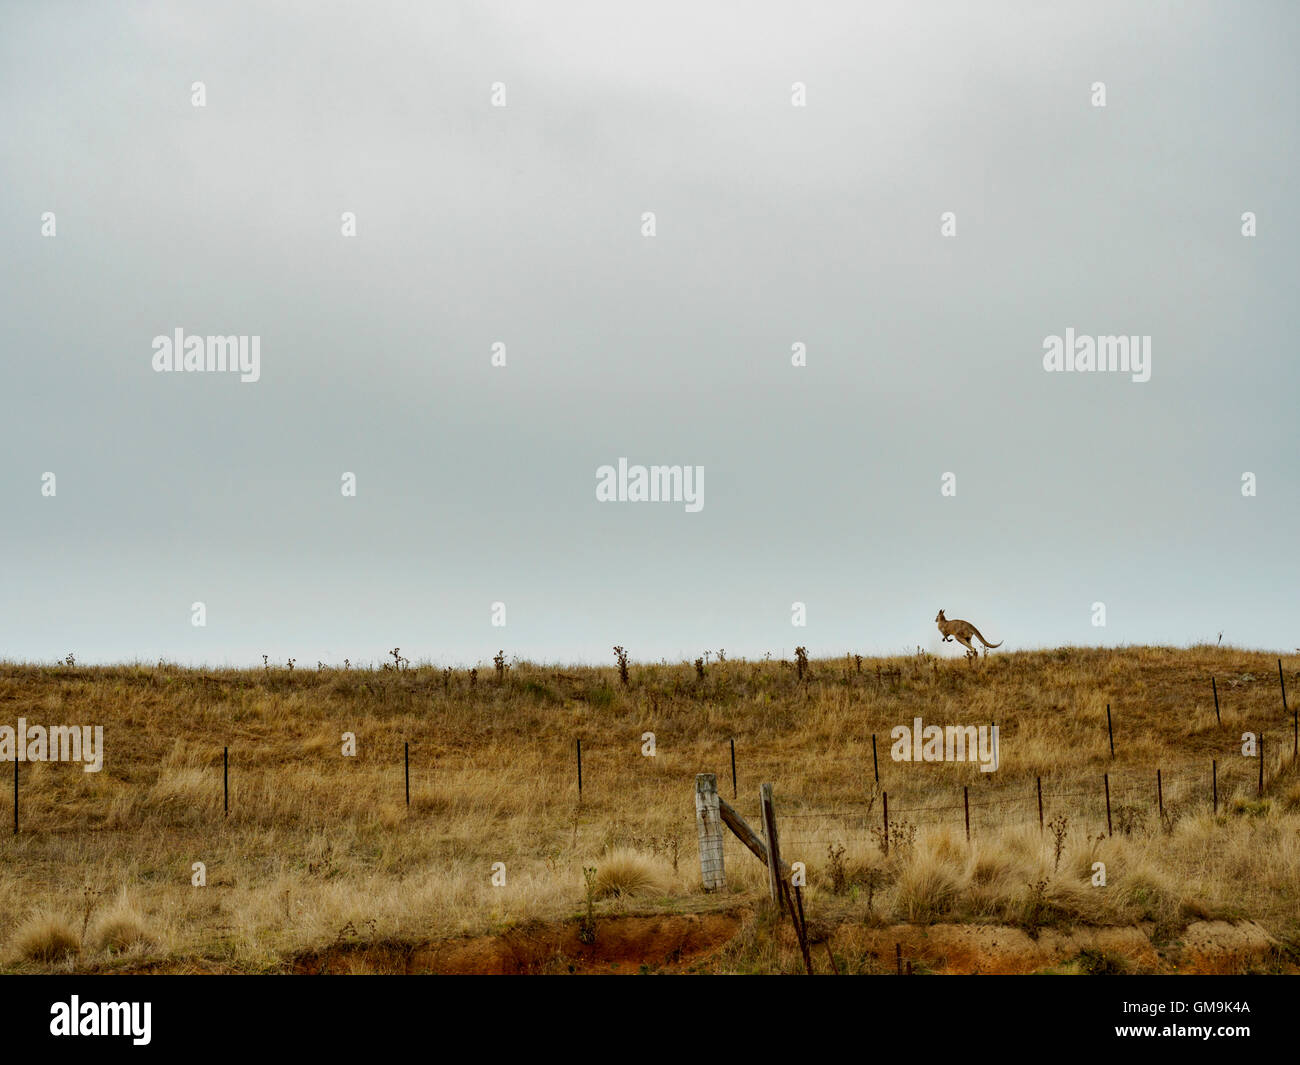 Australia, Rural landscape with kangaroo hopping in grass - Stock Image